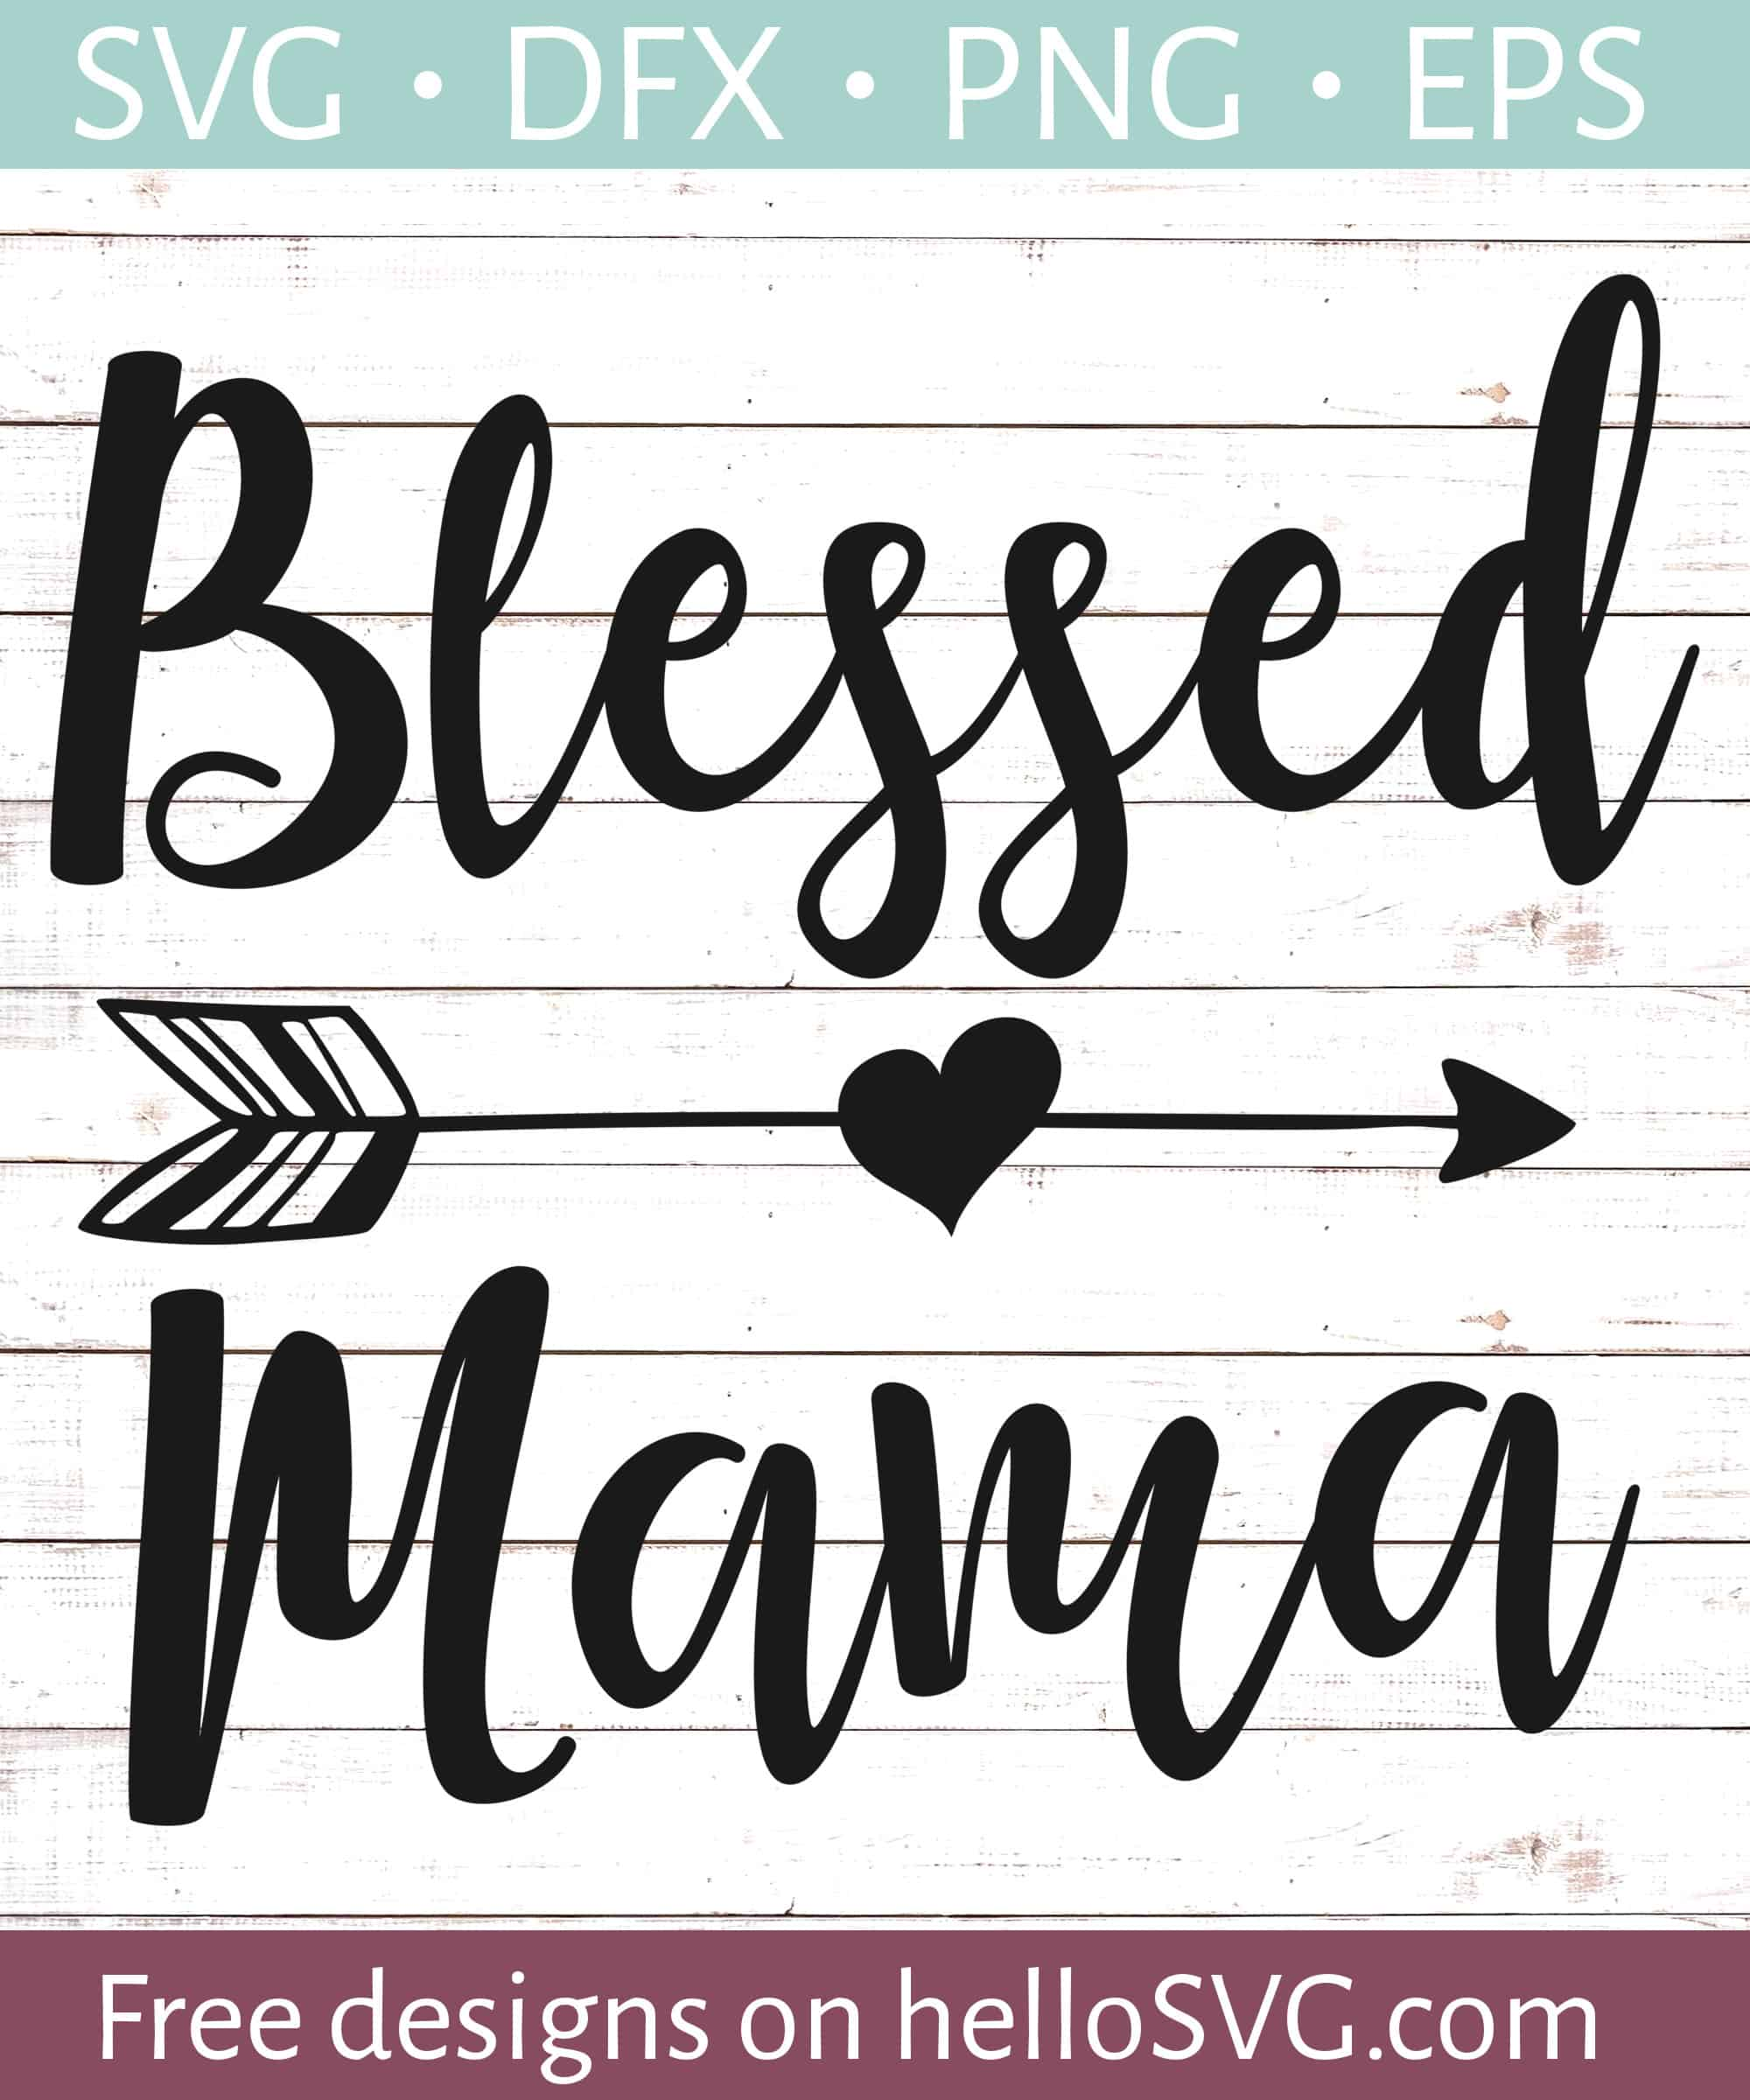 790c7d02129ee Blessed Mama #2 SVG - Free SVG files | HelloSVG.com